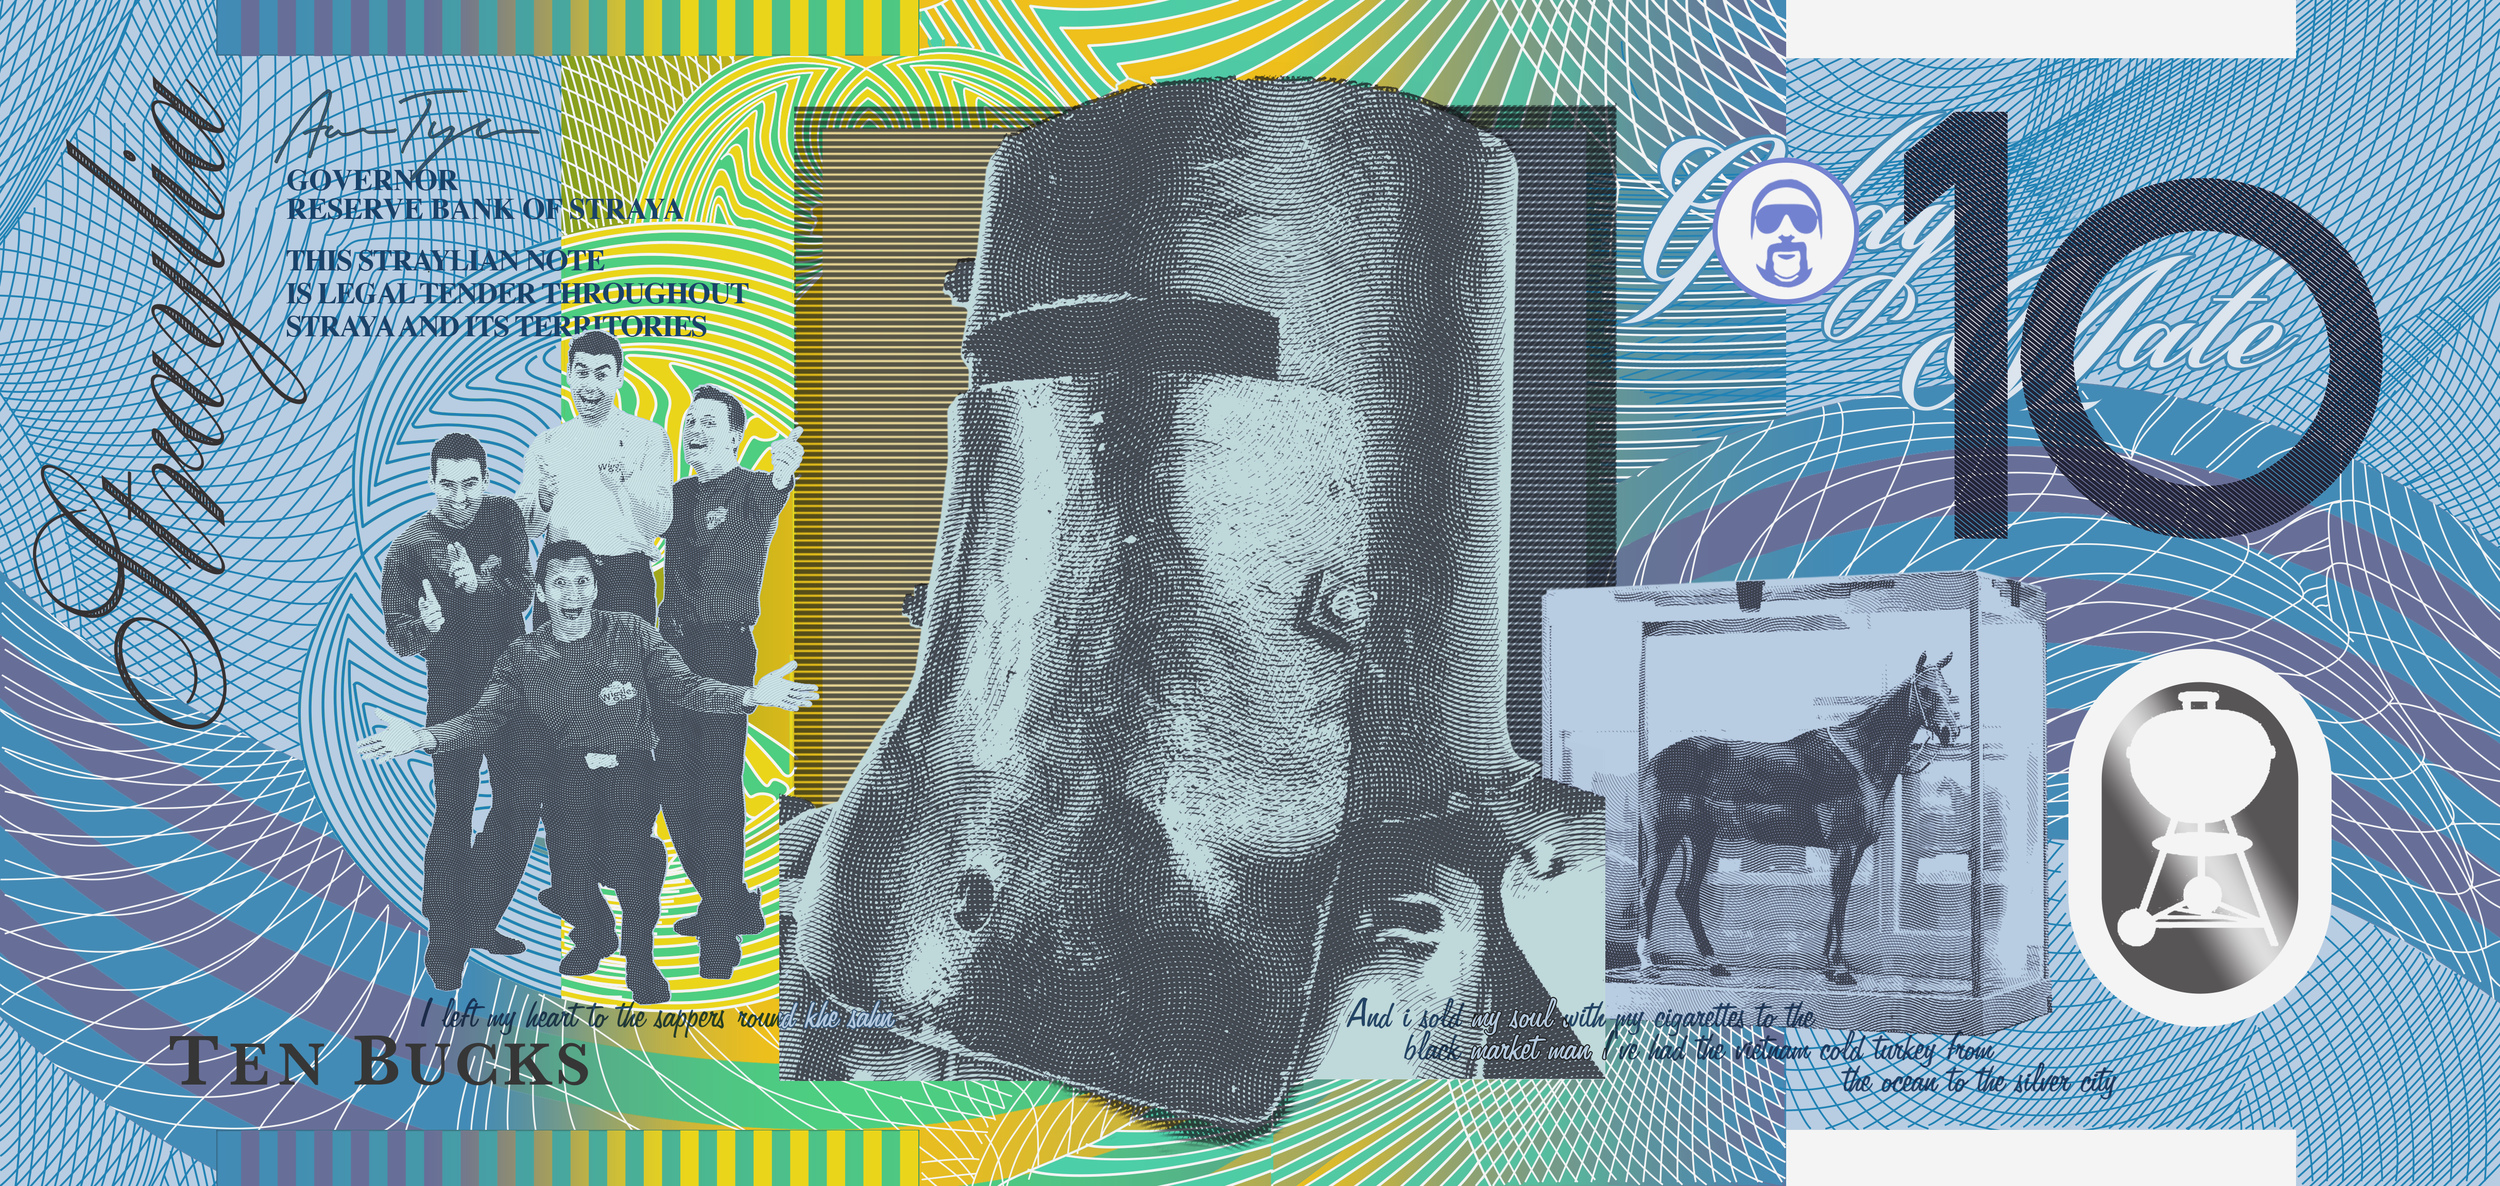 Ned Kelly, The Wiggles, Phar Lap and Chopper